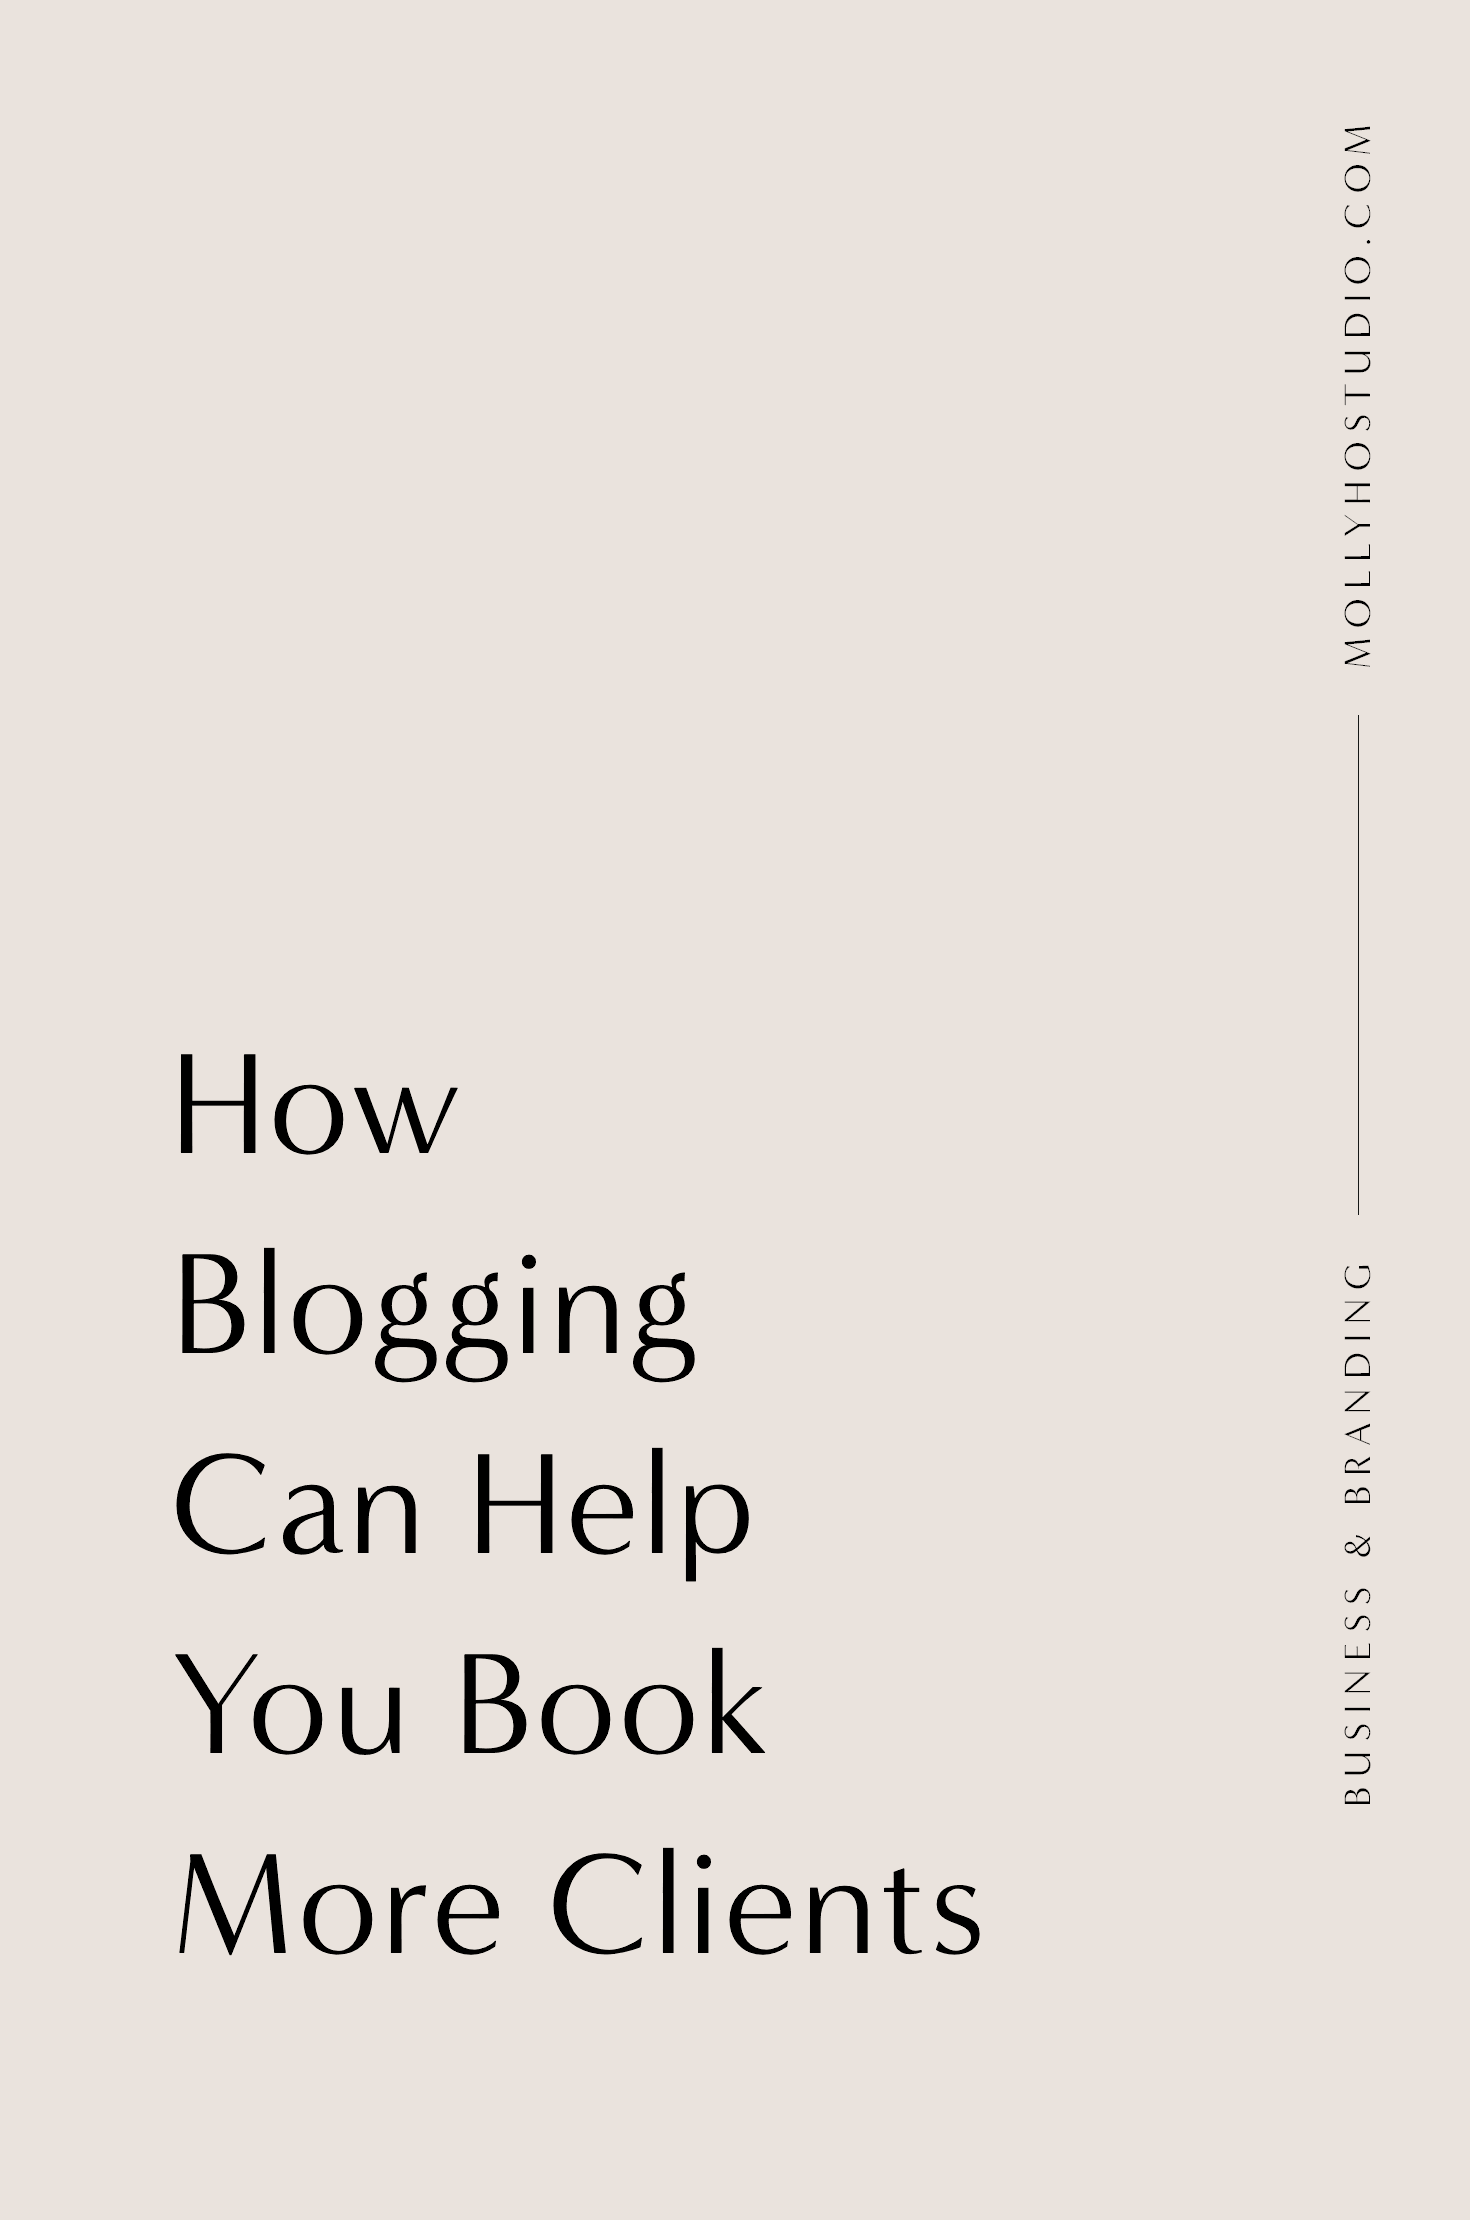 How To Book More Photography Clients With A Blog | How Blogging Can Help Grow Your Photography Business | How To Increase Your Photography Business | Marketing Your Photography Business Online | Branding and Marketing Tips for Photographers | How To Sell Yourself As A Photographer | Molly Ho Studio